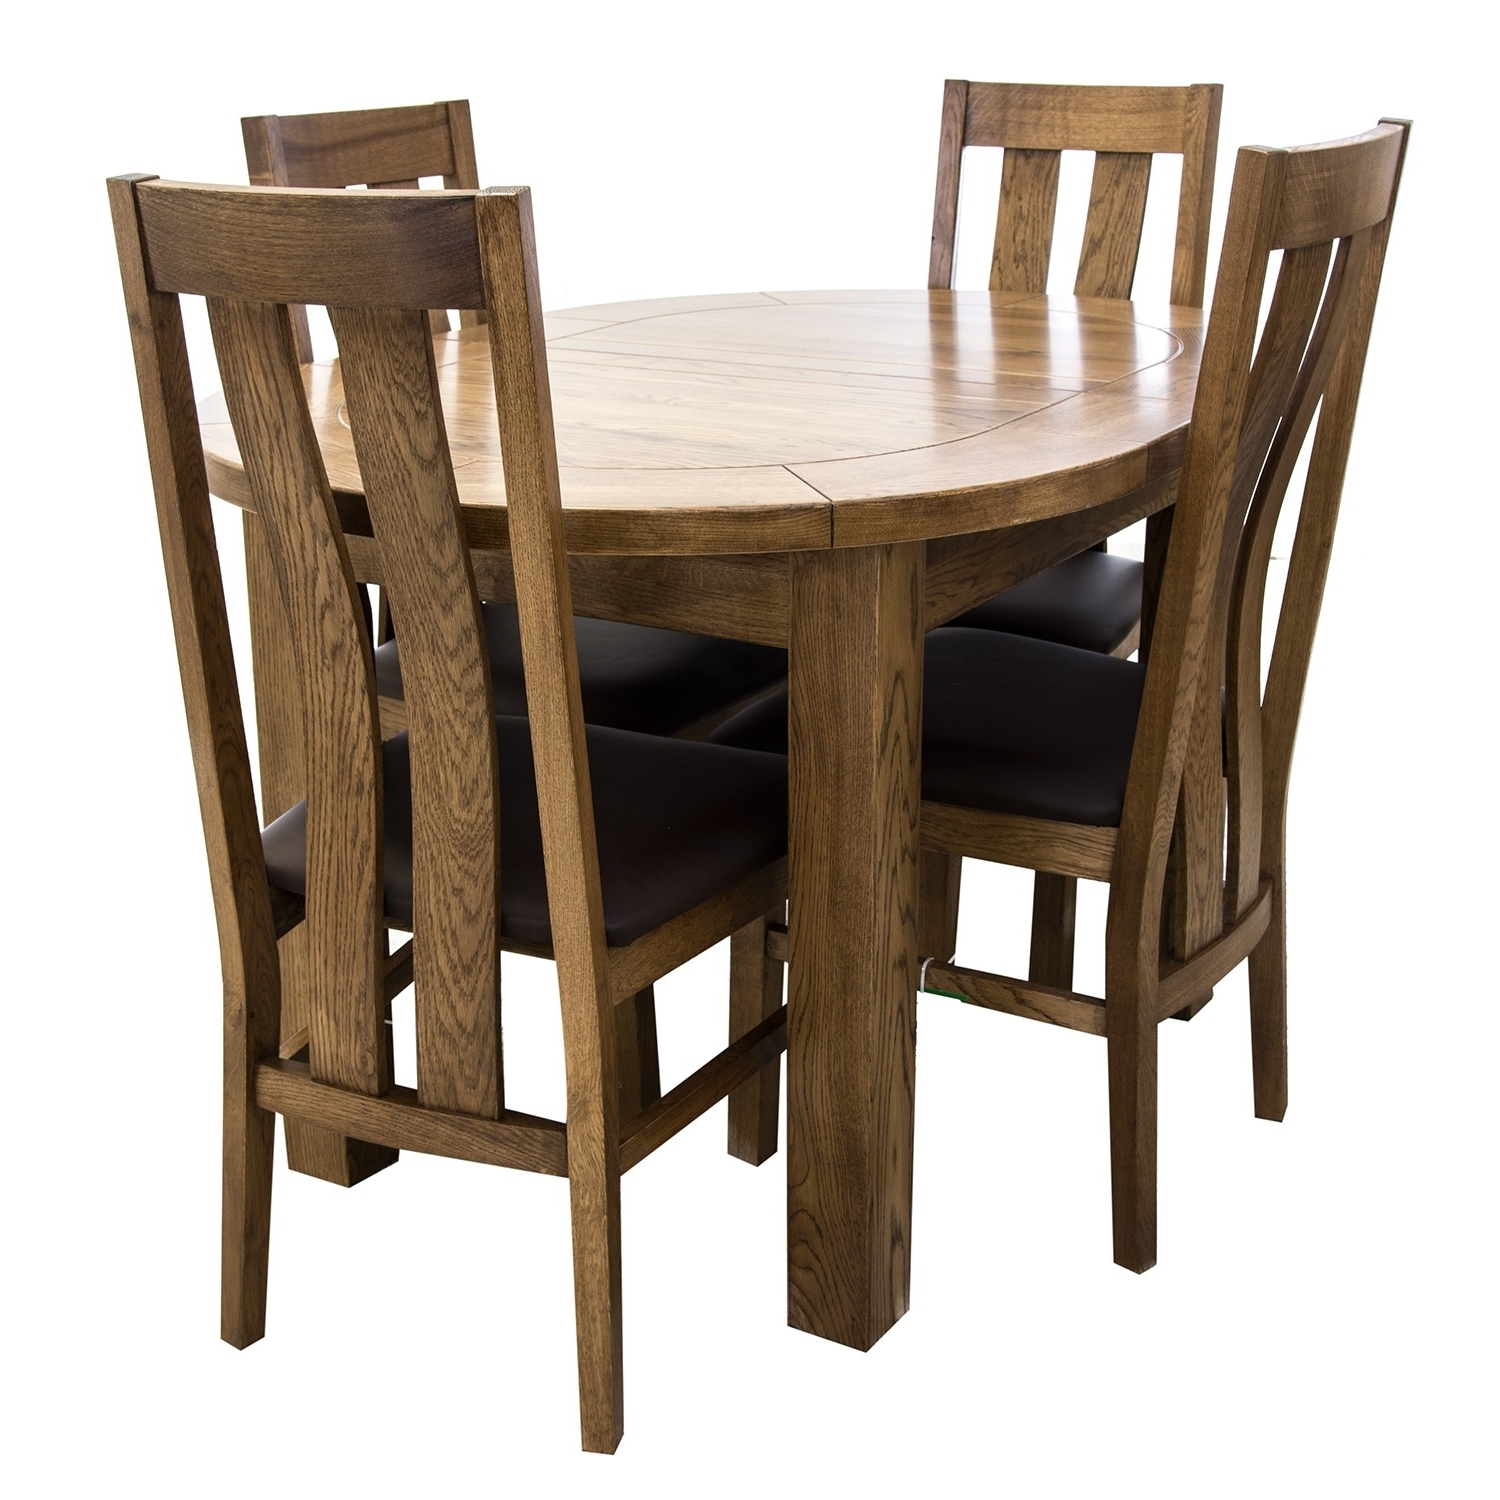 Bordeaux Dining Tables In Current Bordeaux Small D End Dining Table & Four Chairs (Gallery 15 of 25)